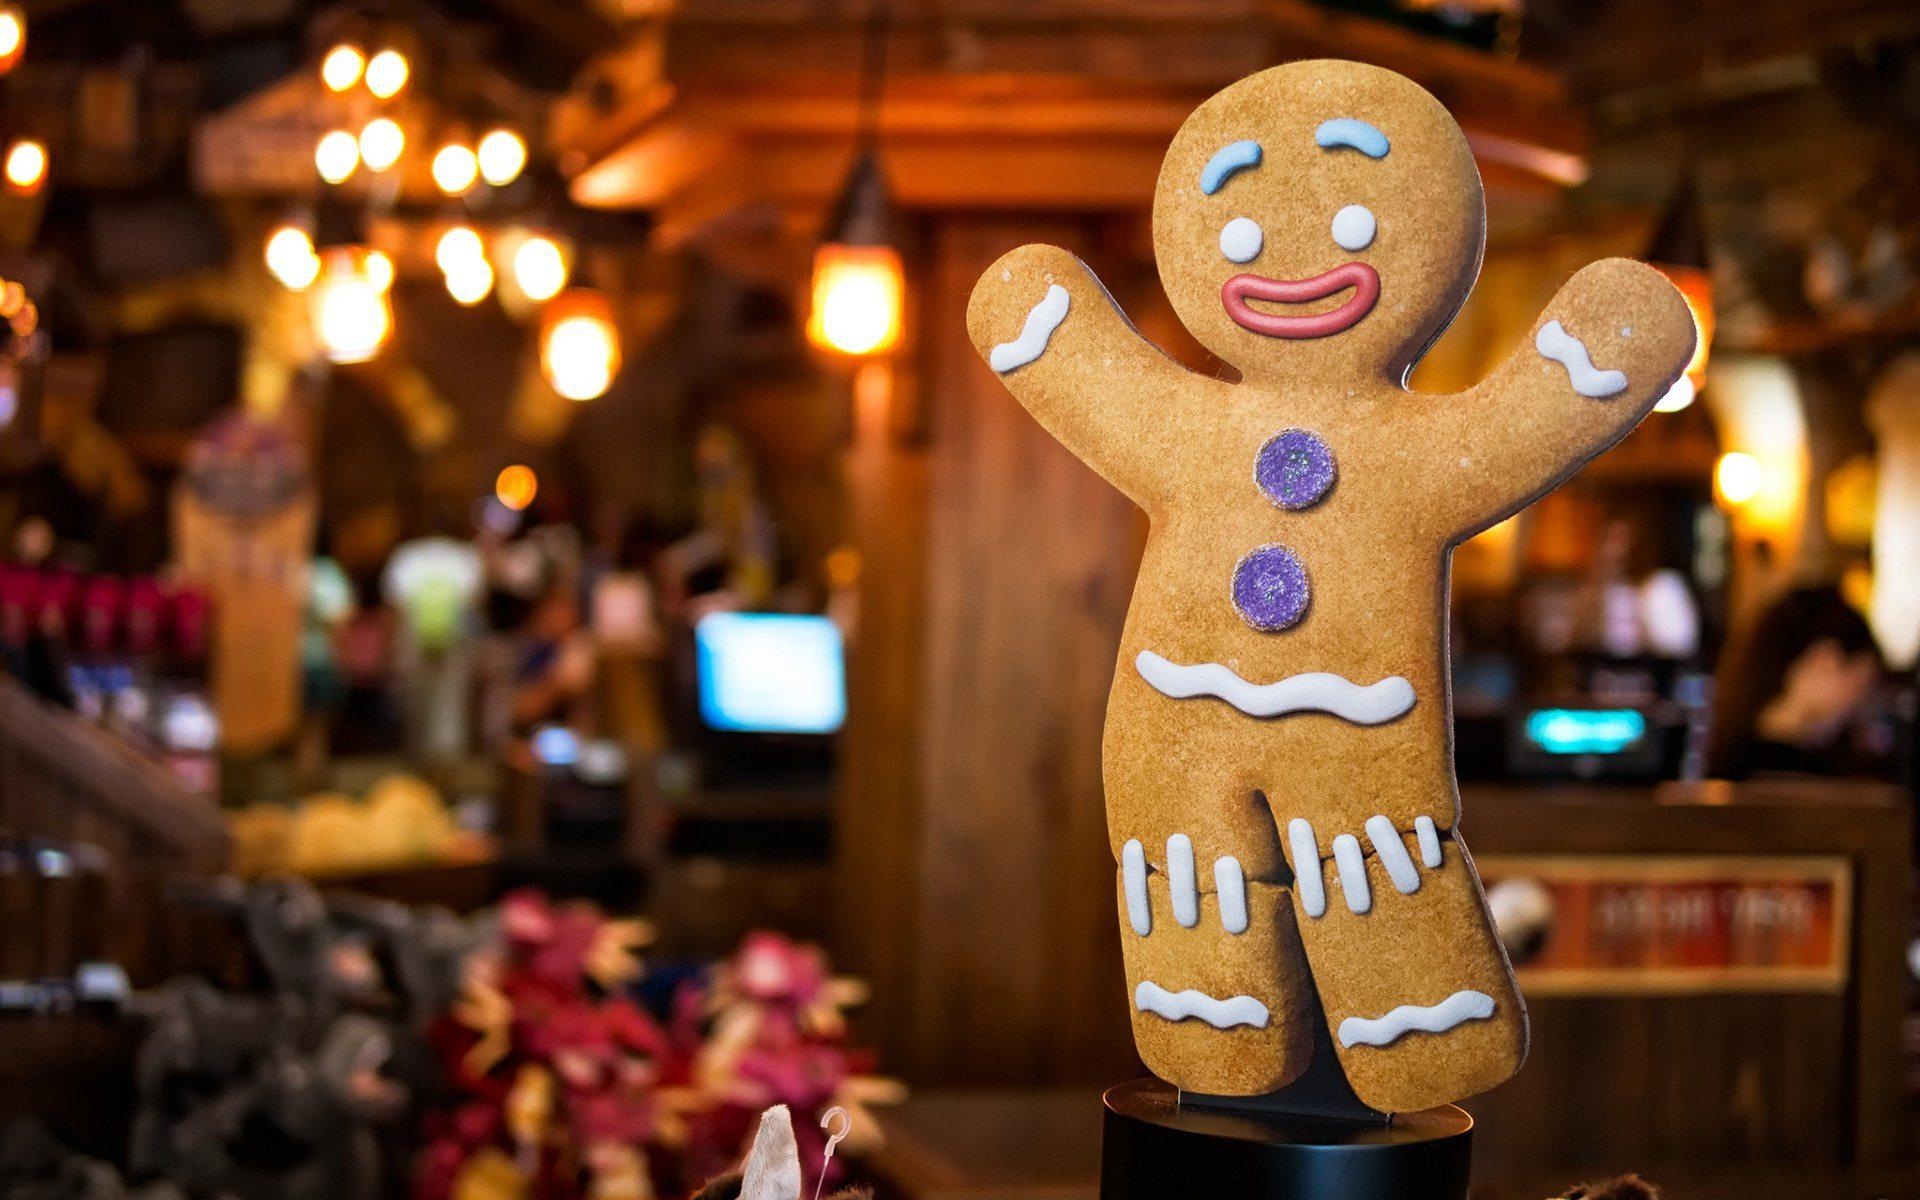 Download Gingerbread Man wallpaper